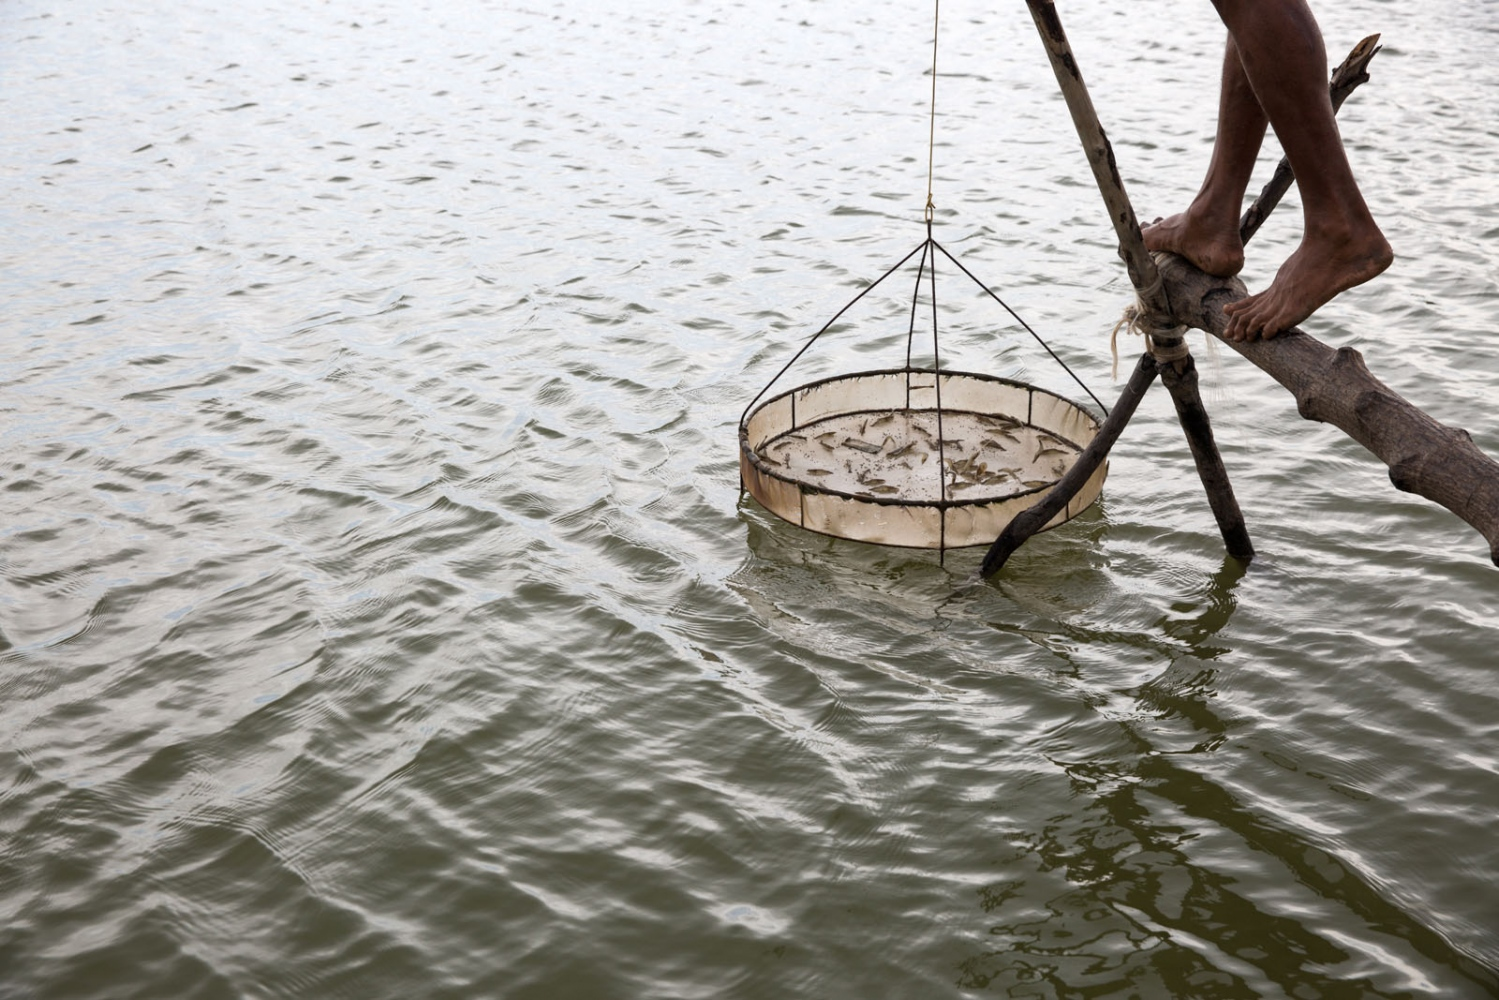 A shrimp farmer raises a net to look at the size of his shrimp on his farm in Vinh Chau district of Soc Trang province. He was previously a rice farmer but an increased salinity of his land forced him to change from rice to harvest shrimp. But shrimp farms have their own issues related to the changing temperature and salinity of the water from too much rain and the over-use of antibiotics and chemicals to increase yields that in turn pollutes surrounding waterways.